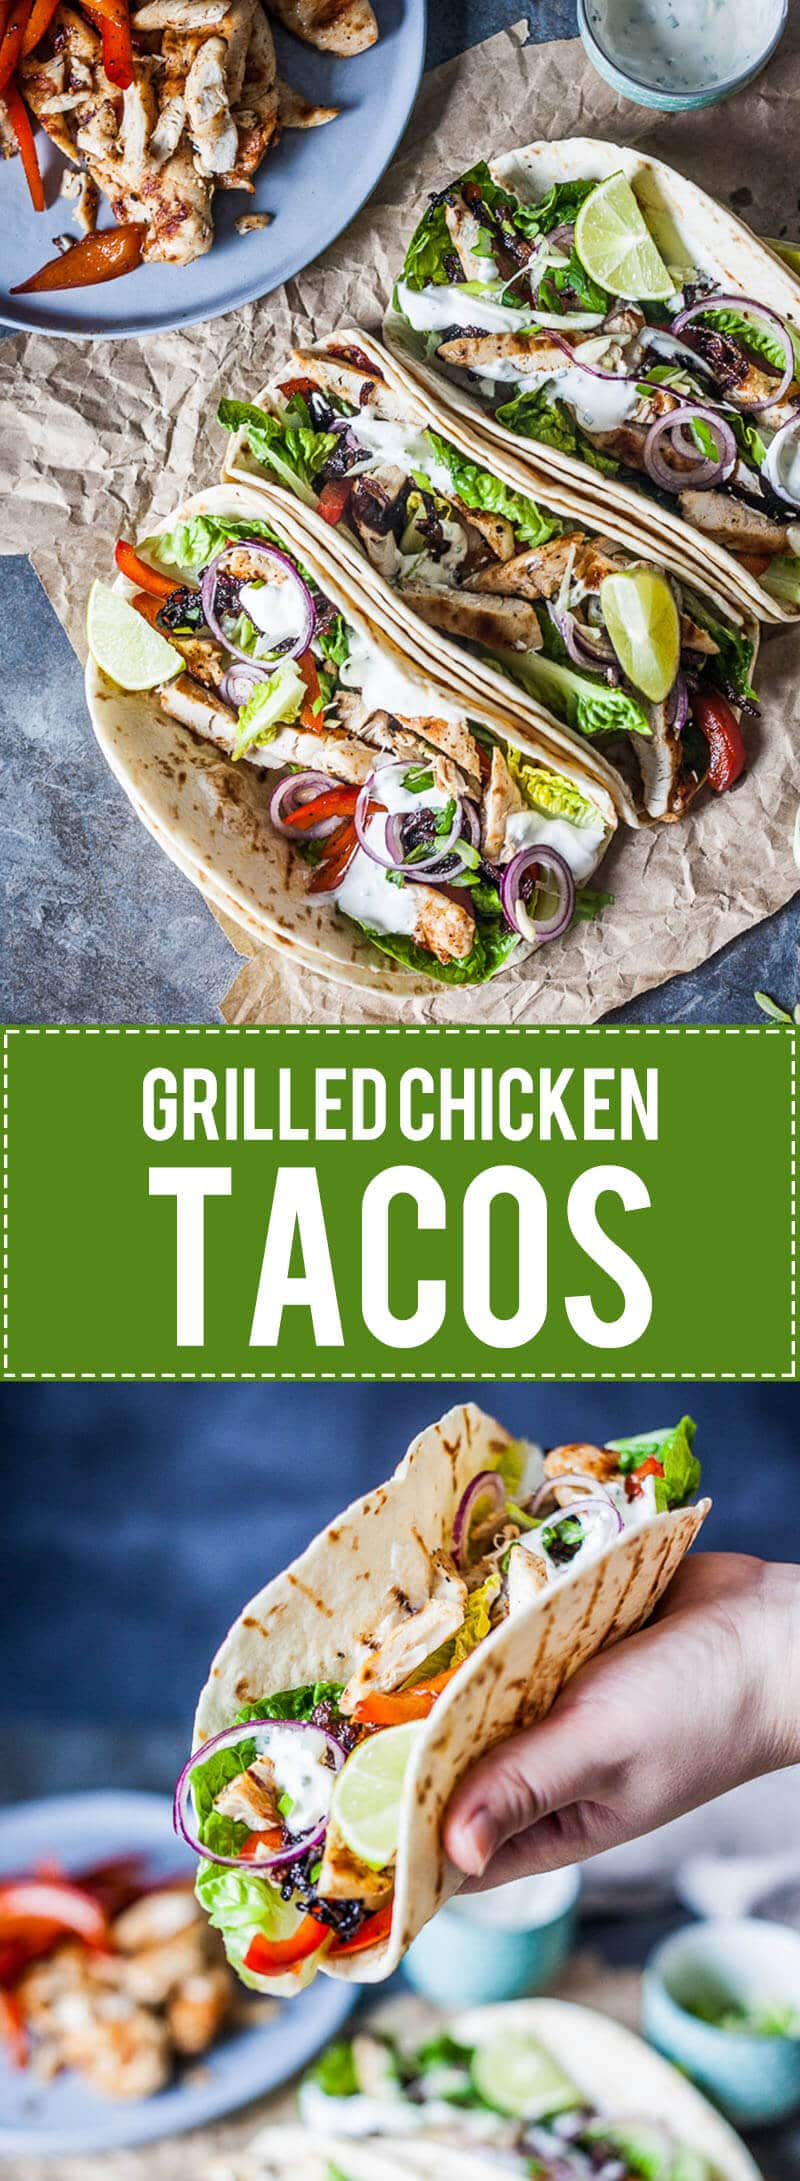 Grilled Chicken Tacos are a healthy and easy meal for every day. Also an excellent to-go meal for the office and a real crowd-pleaser!